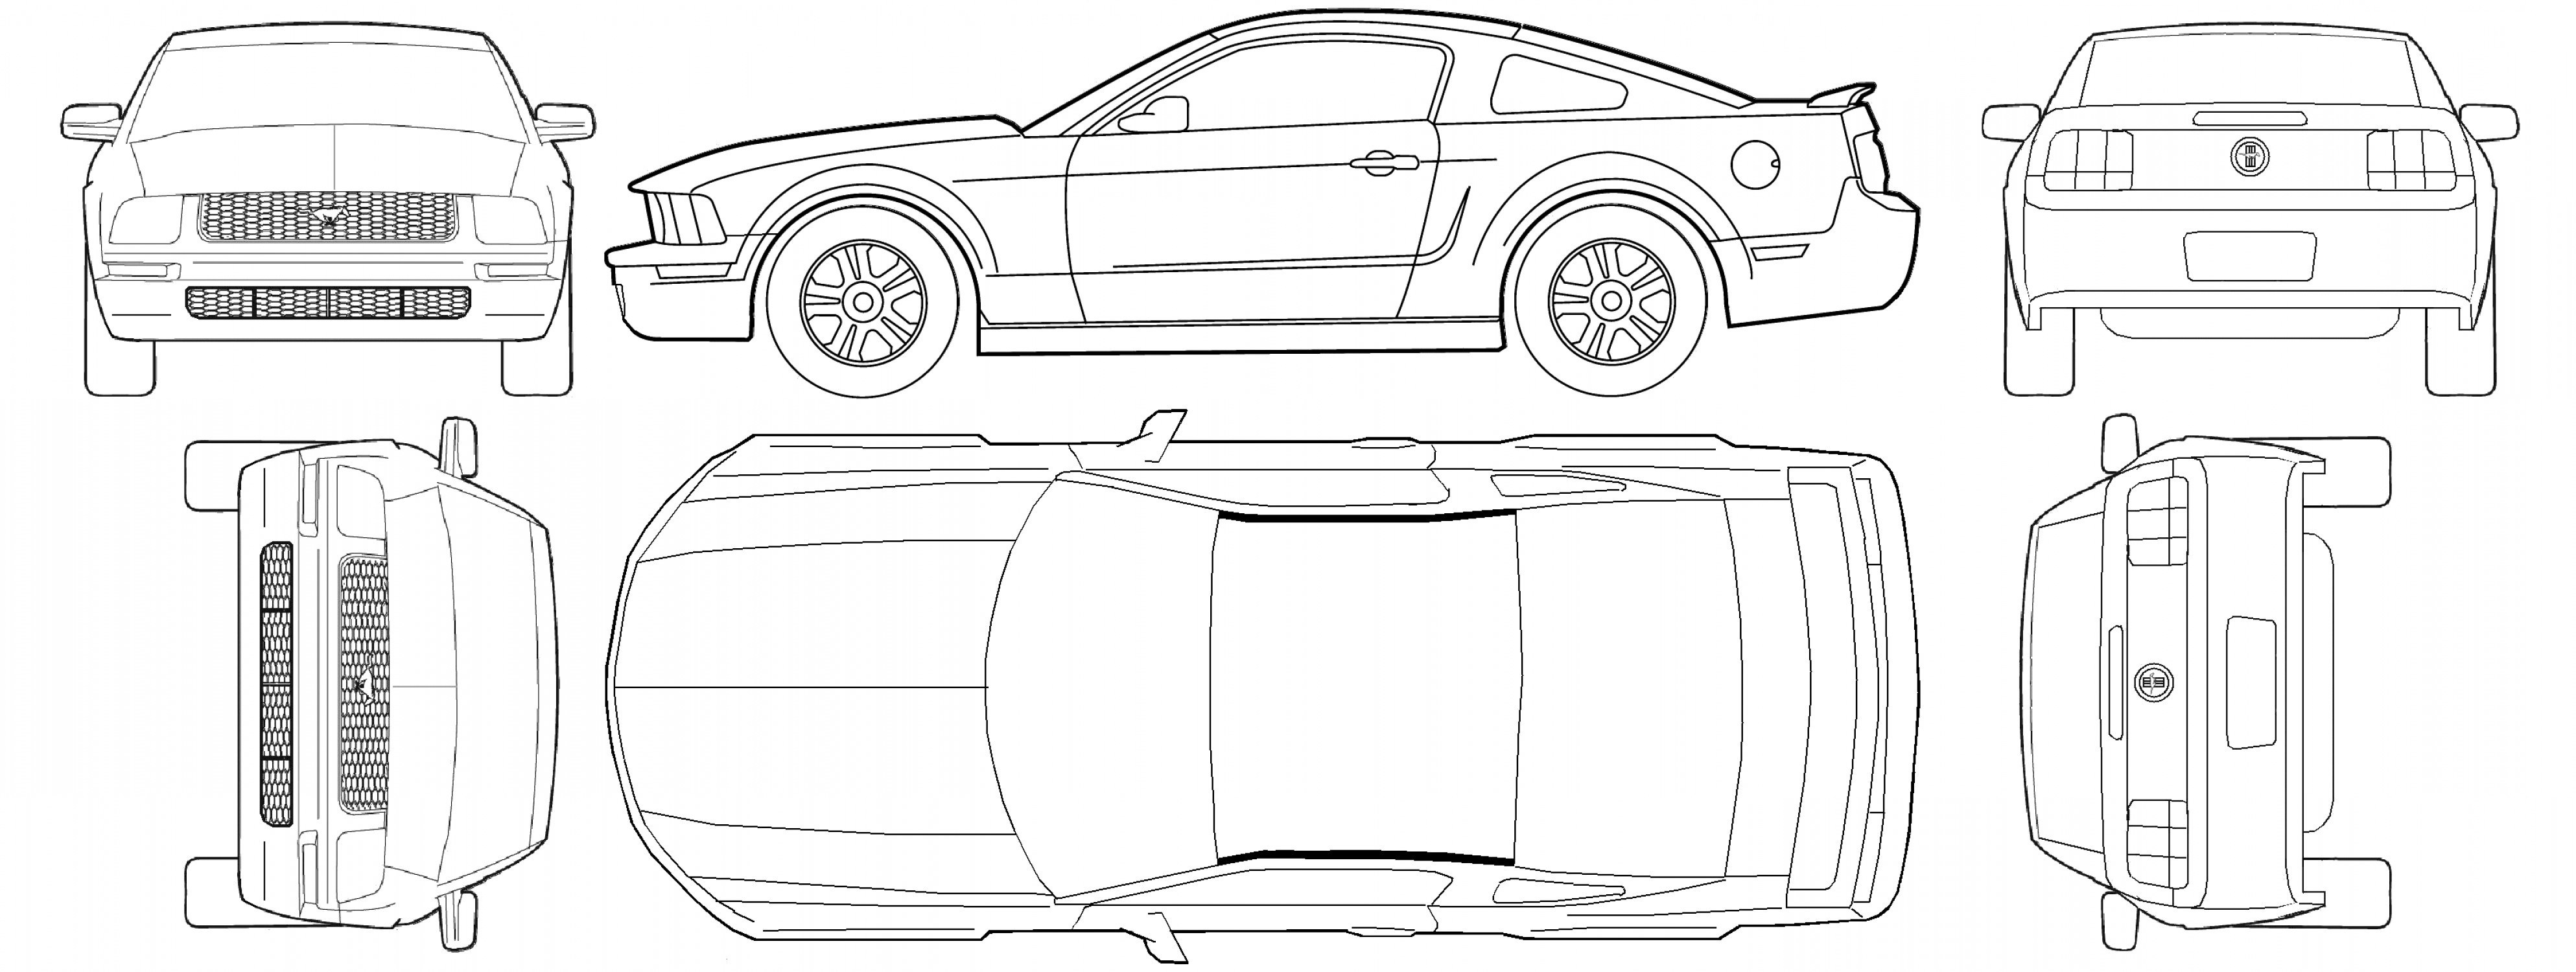 2005 Ford Mustang GT Drawing Vector: Ford Mustang V Coupe Blueprints